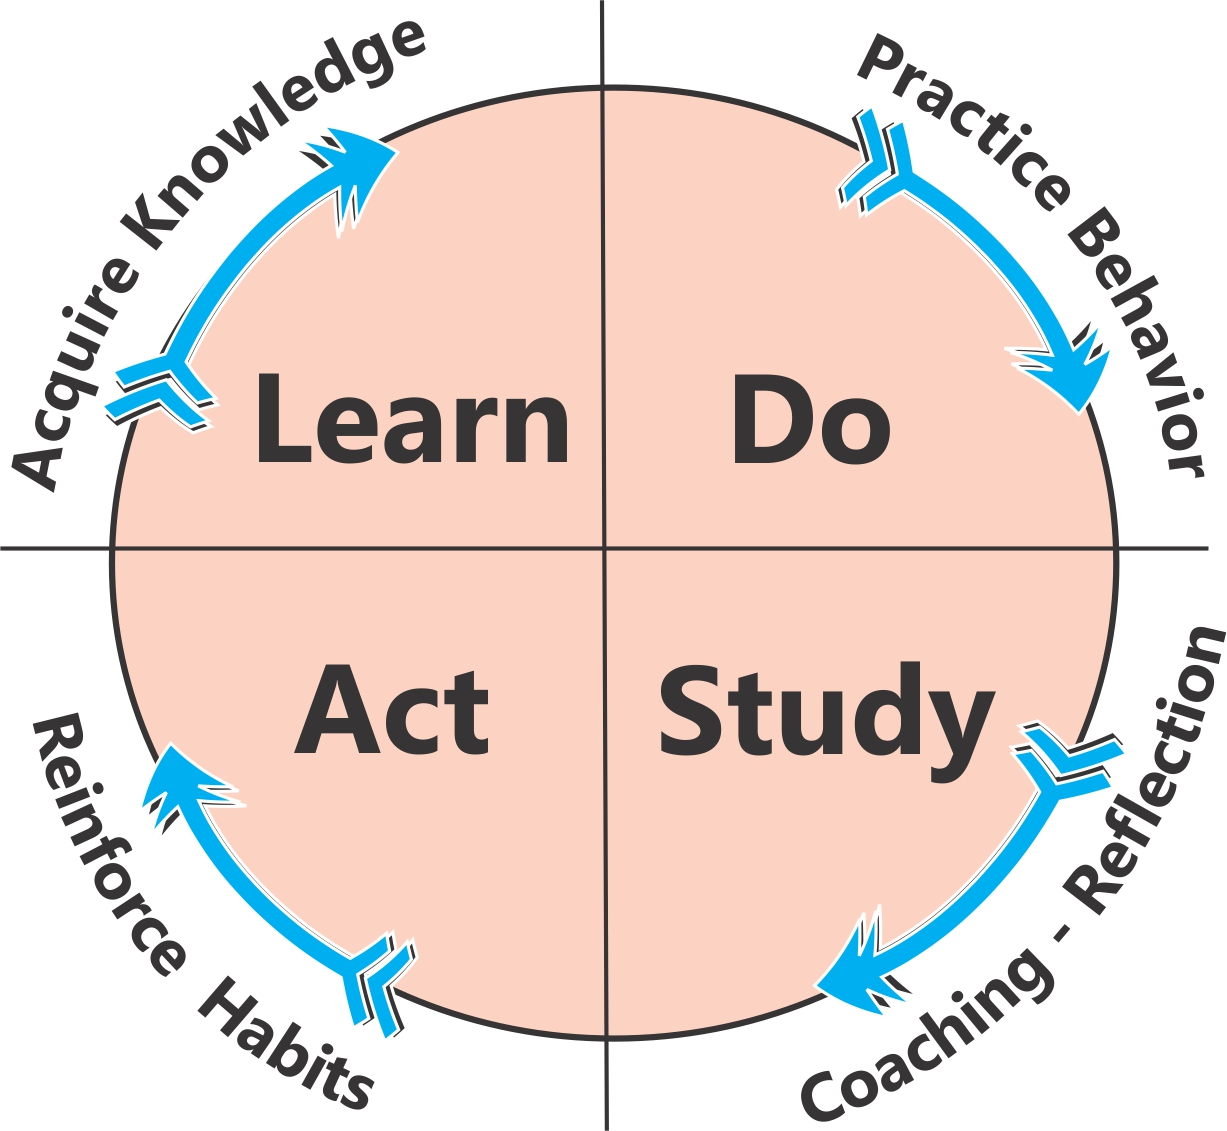 How to Build Lean Systems of Organizational Learning